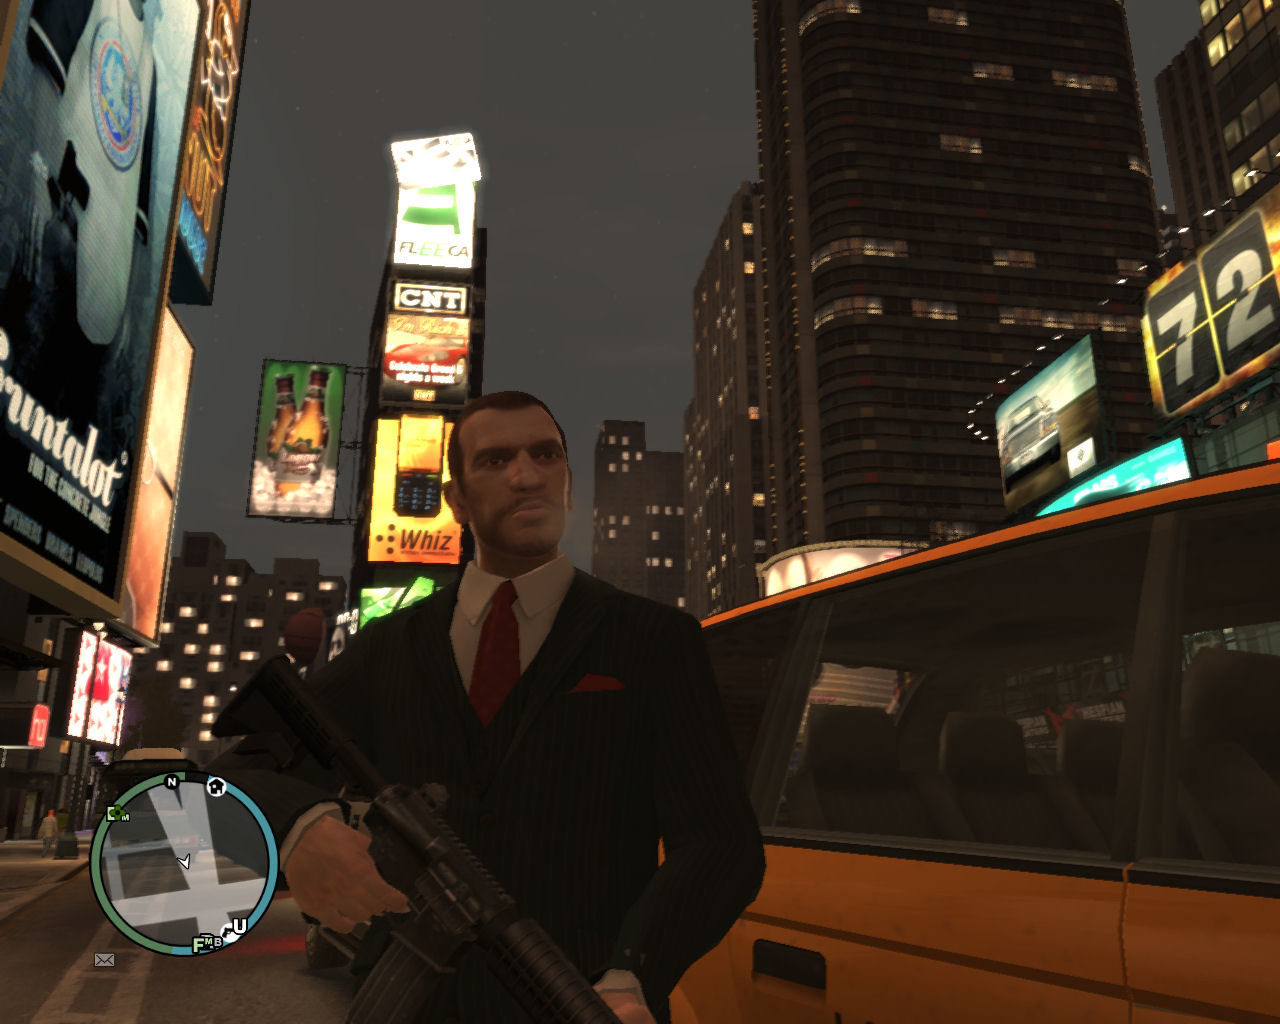 Grand Theft Auto IV Windows Going out can be fun in GTA4